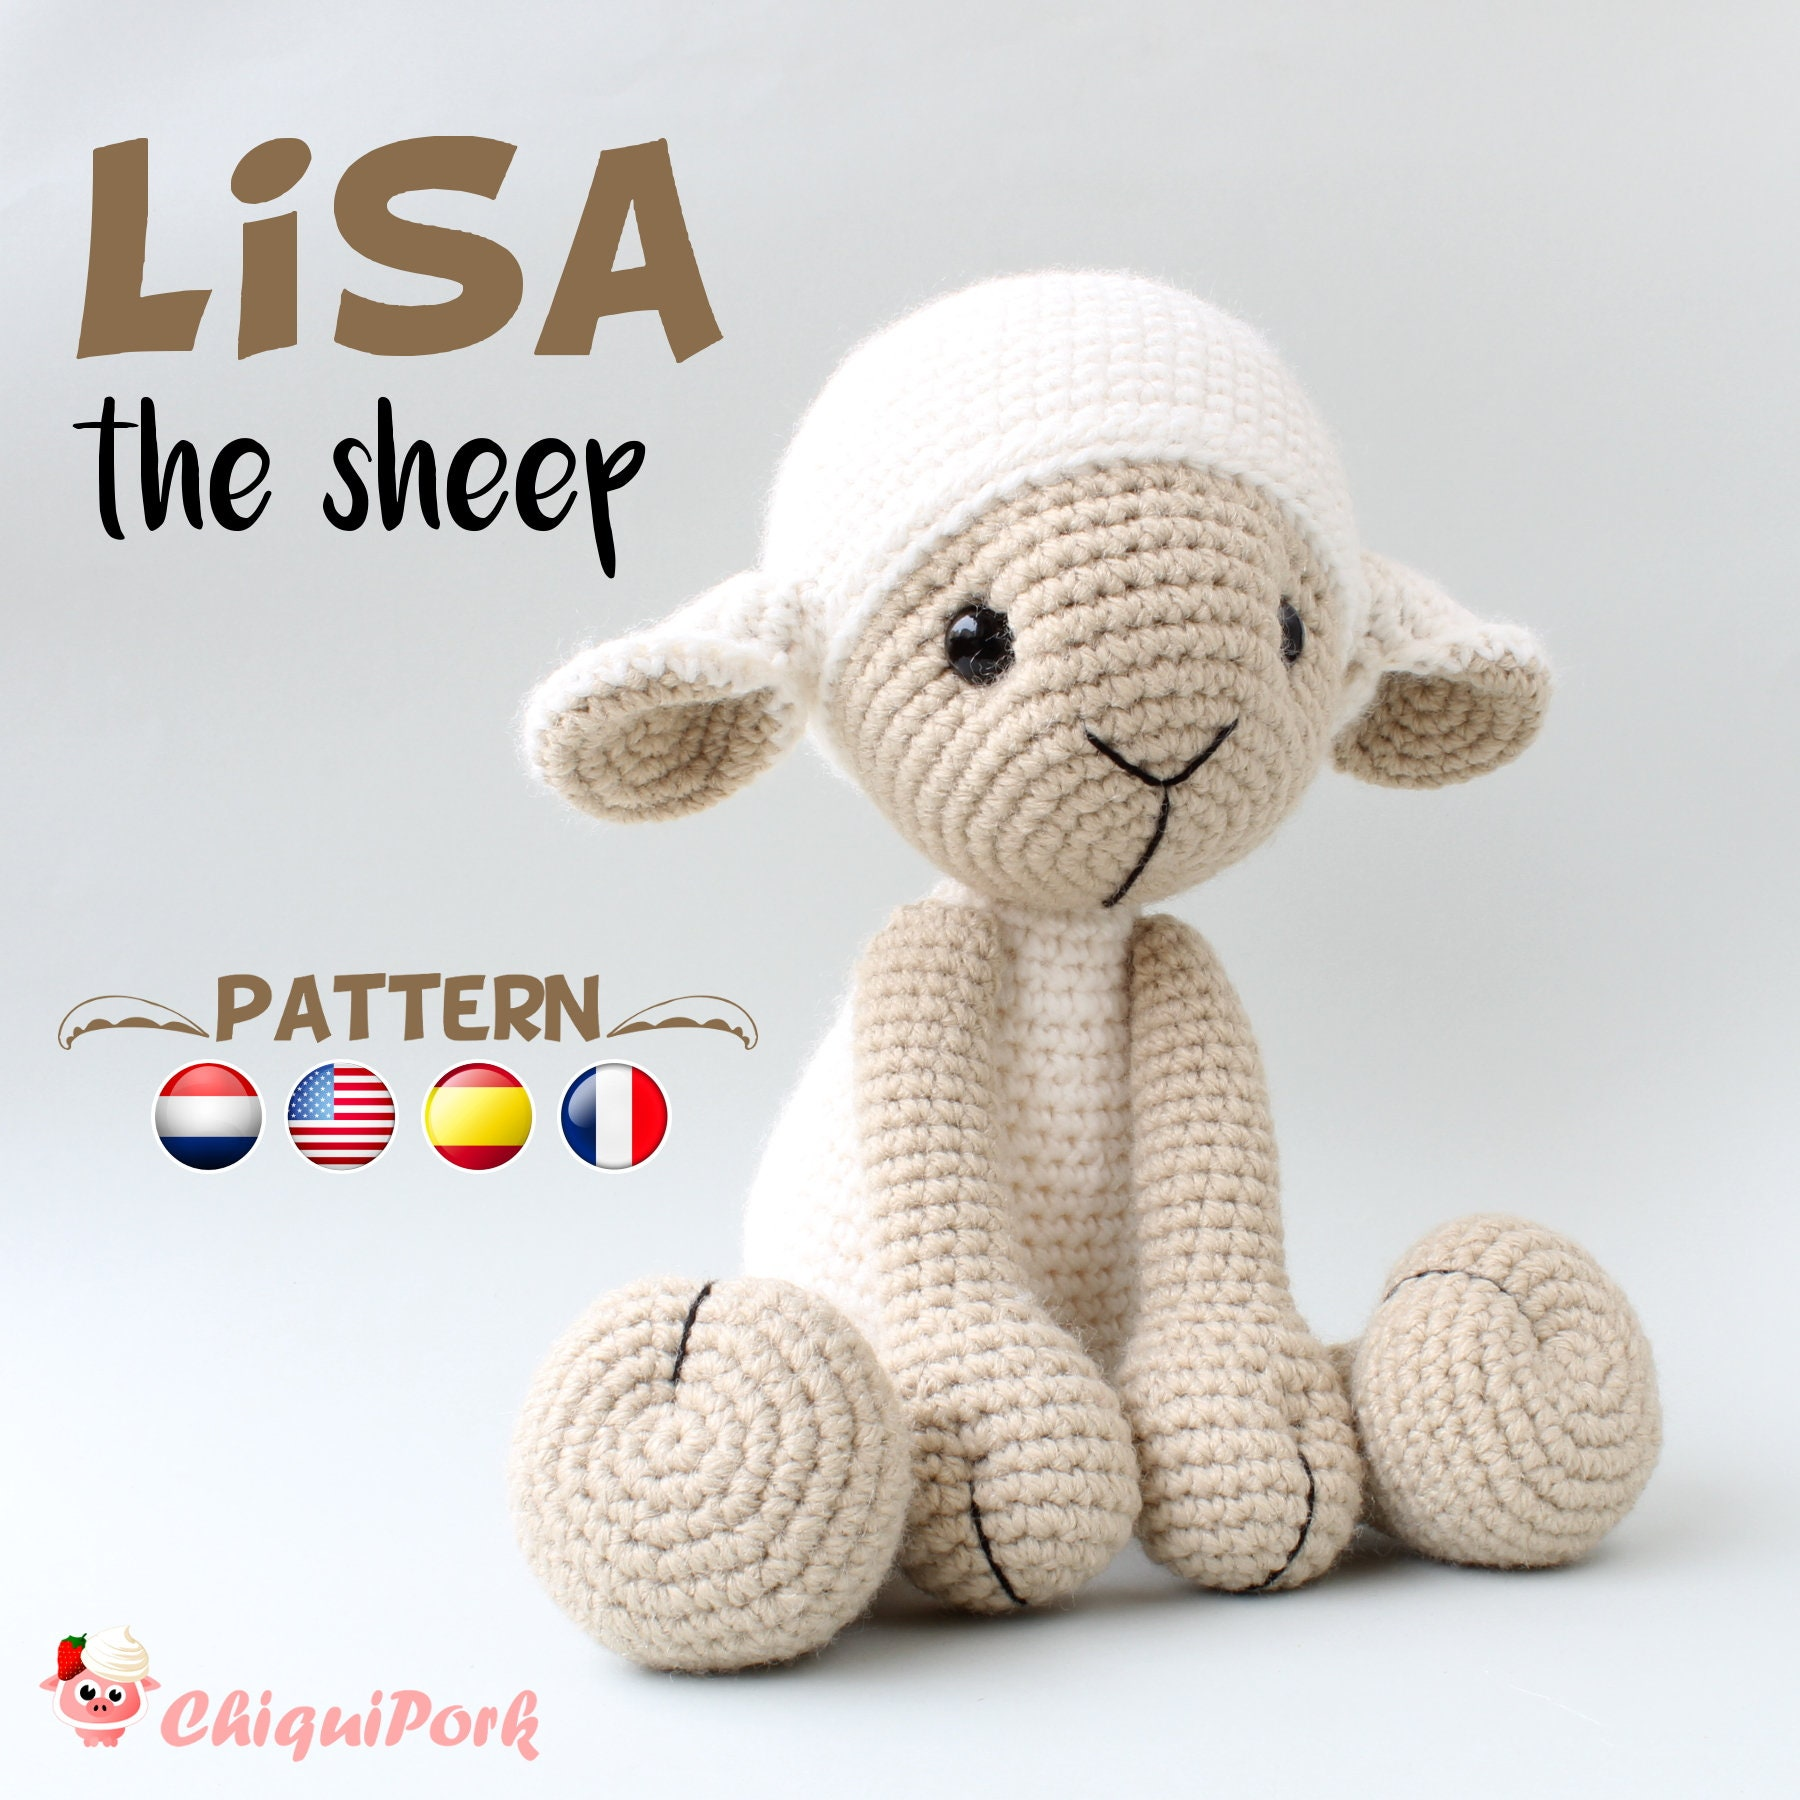 Crochet Sheep Pattern Amigurumi Pdf Tutorial Lisa The Etsy